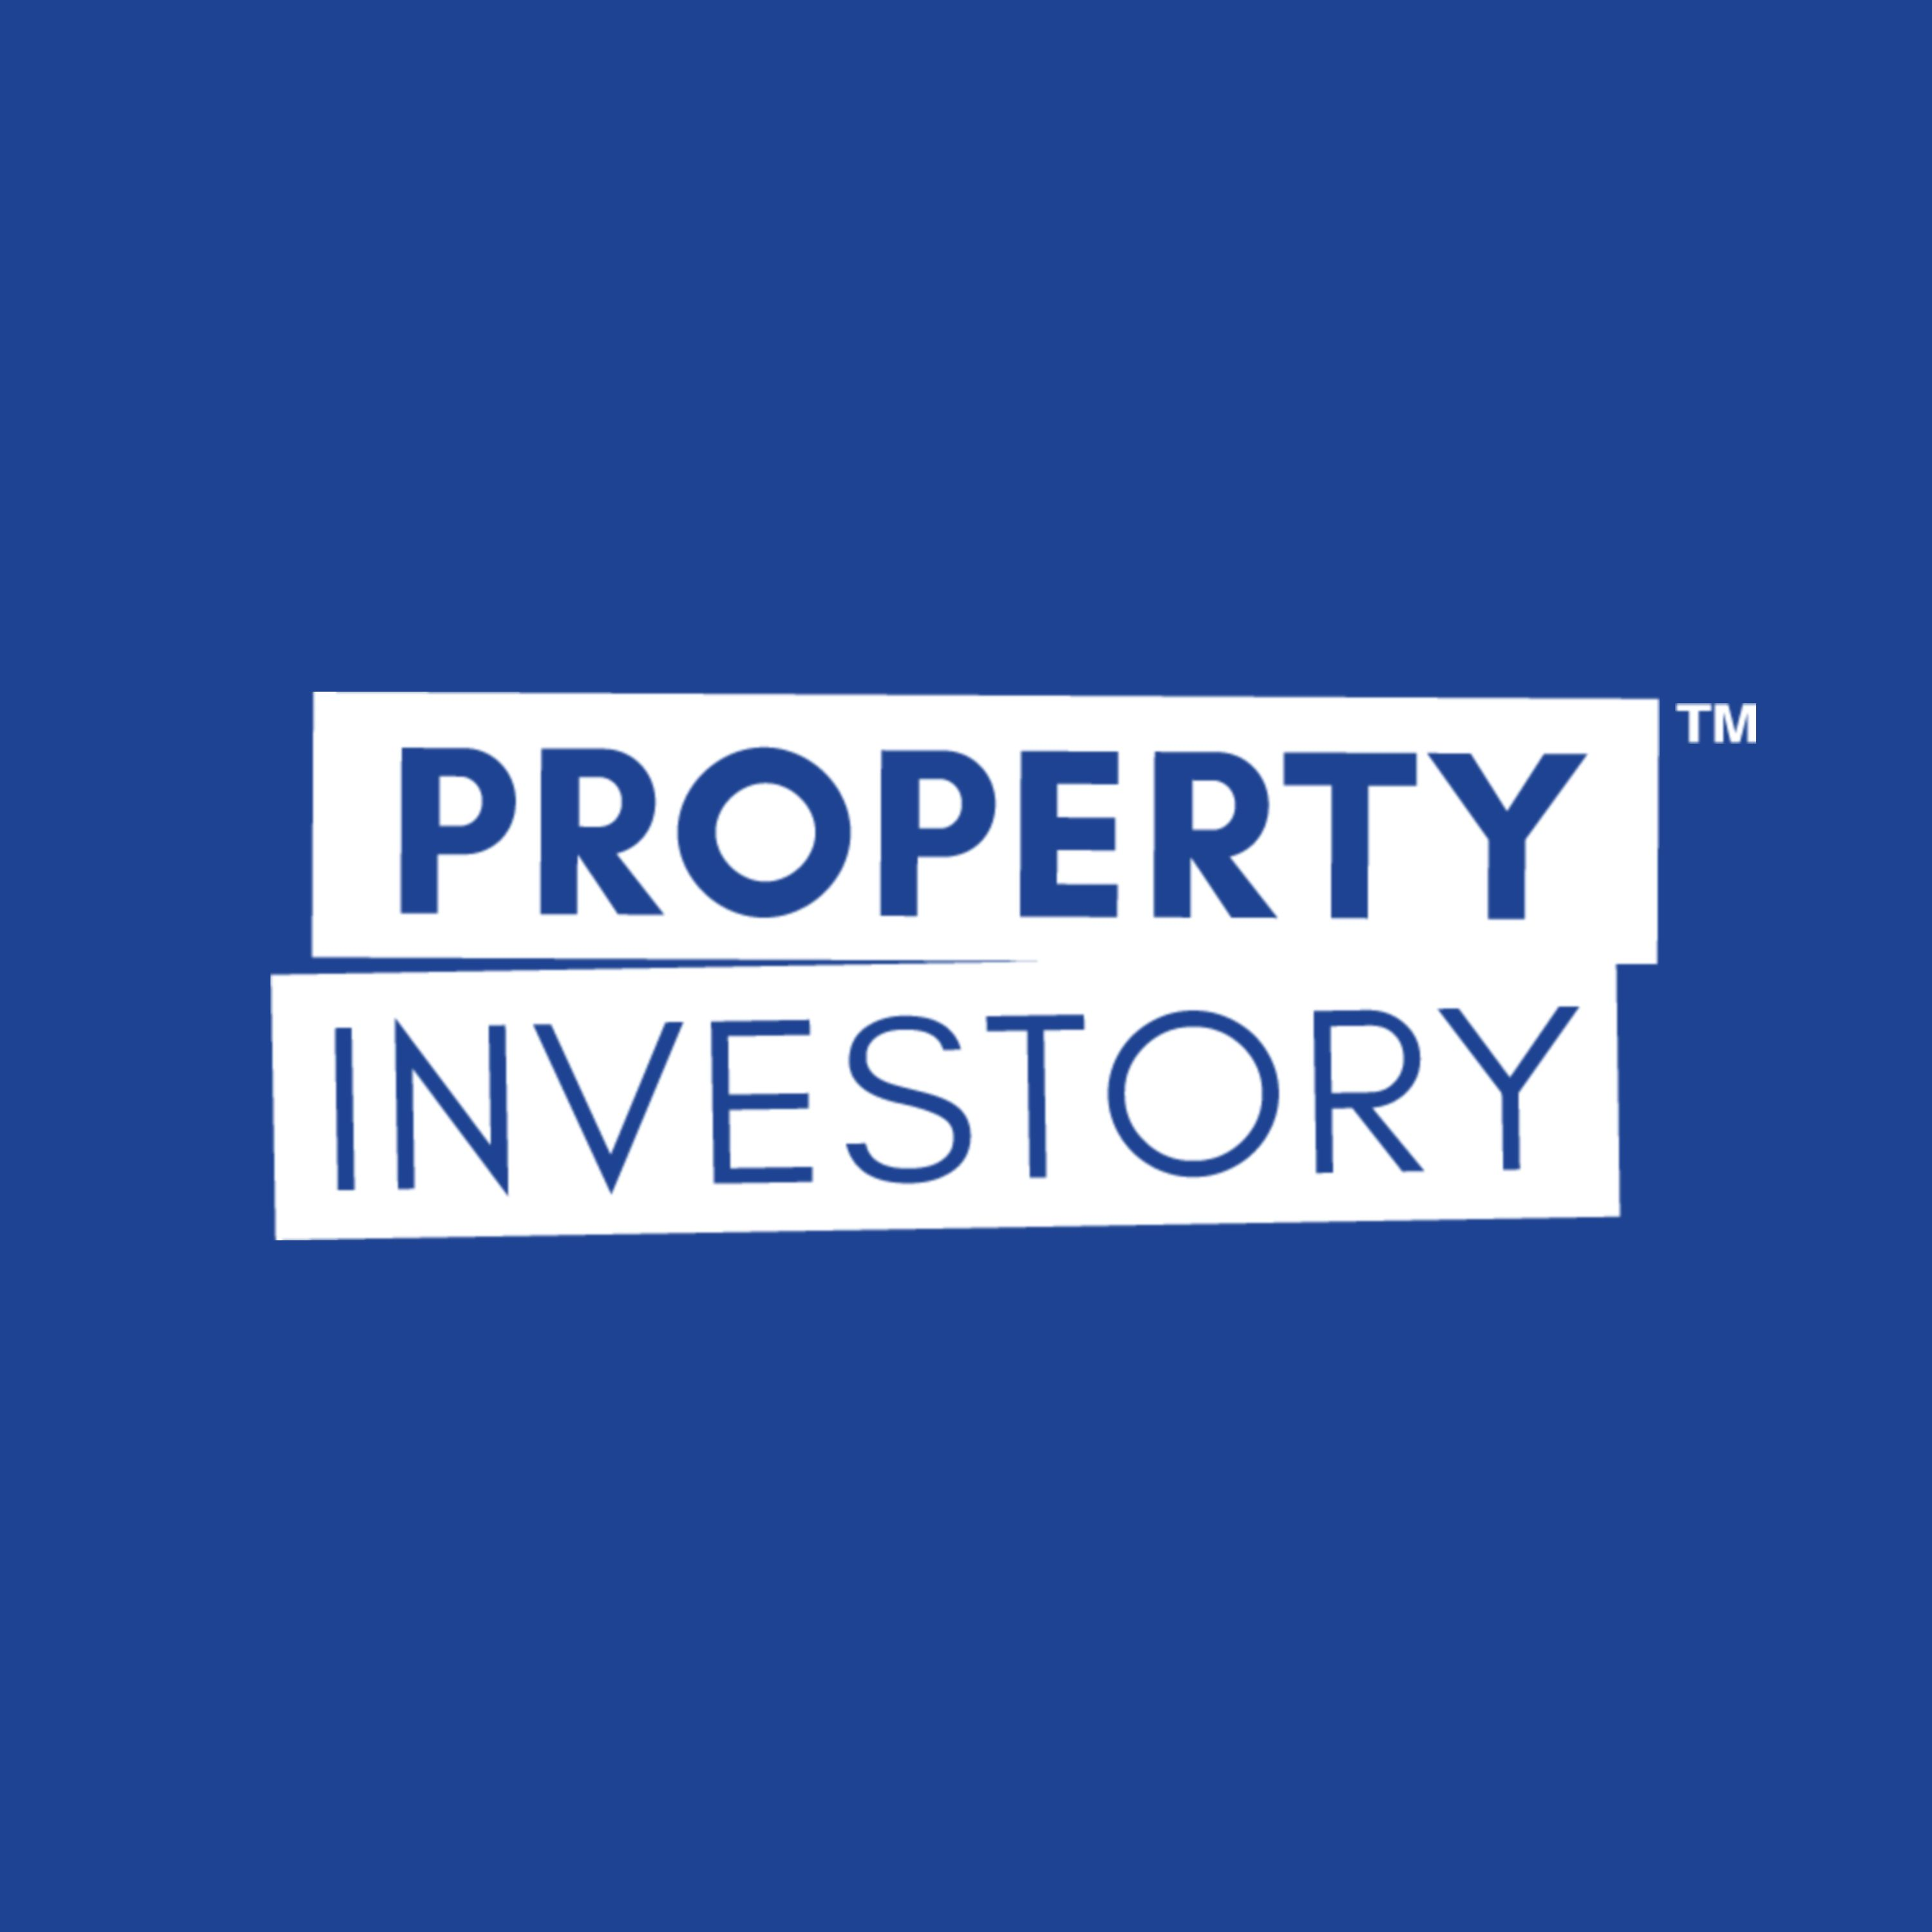 Australian Property Investor Stories   Investment Conversations:Property Investory